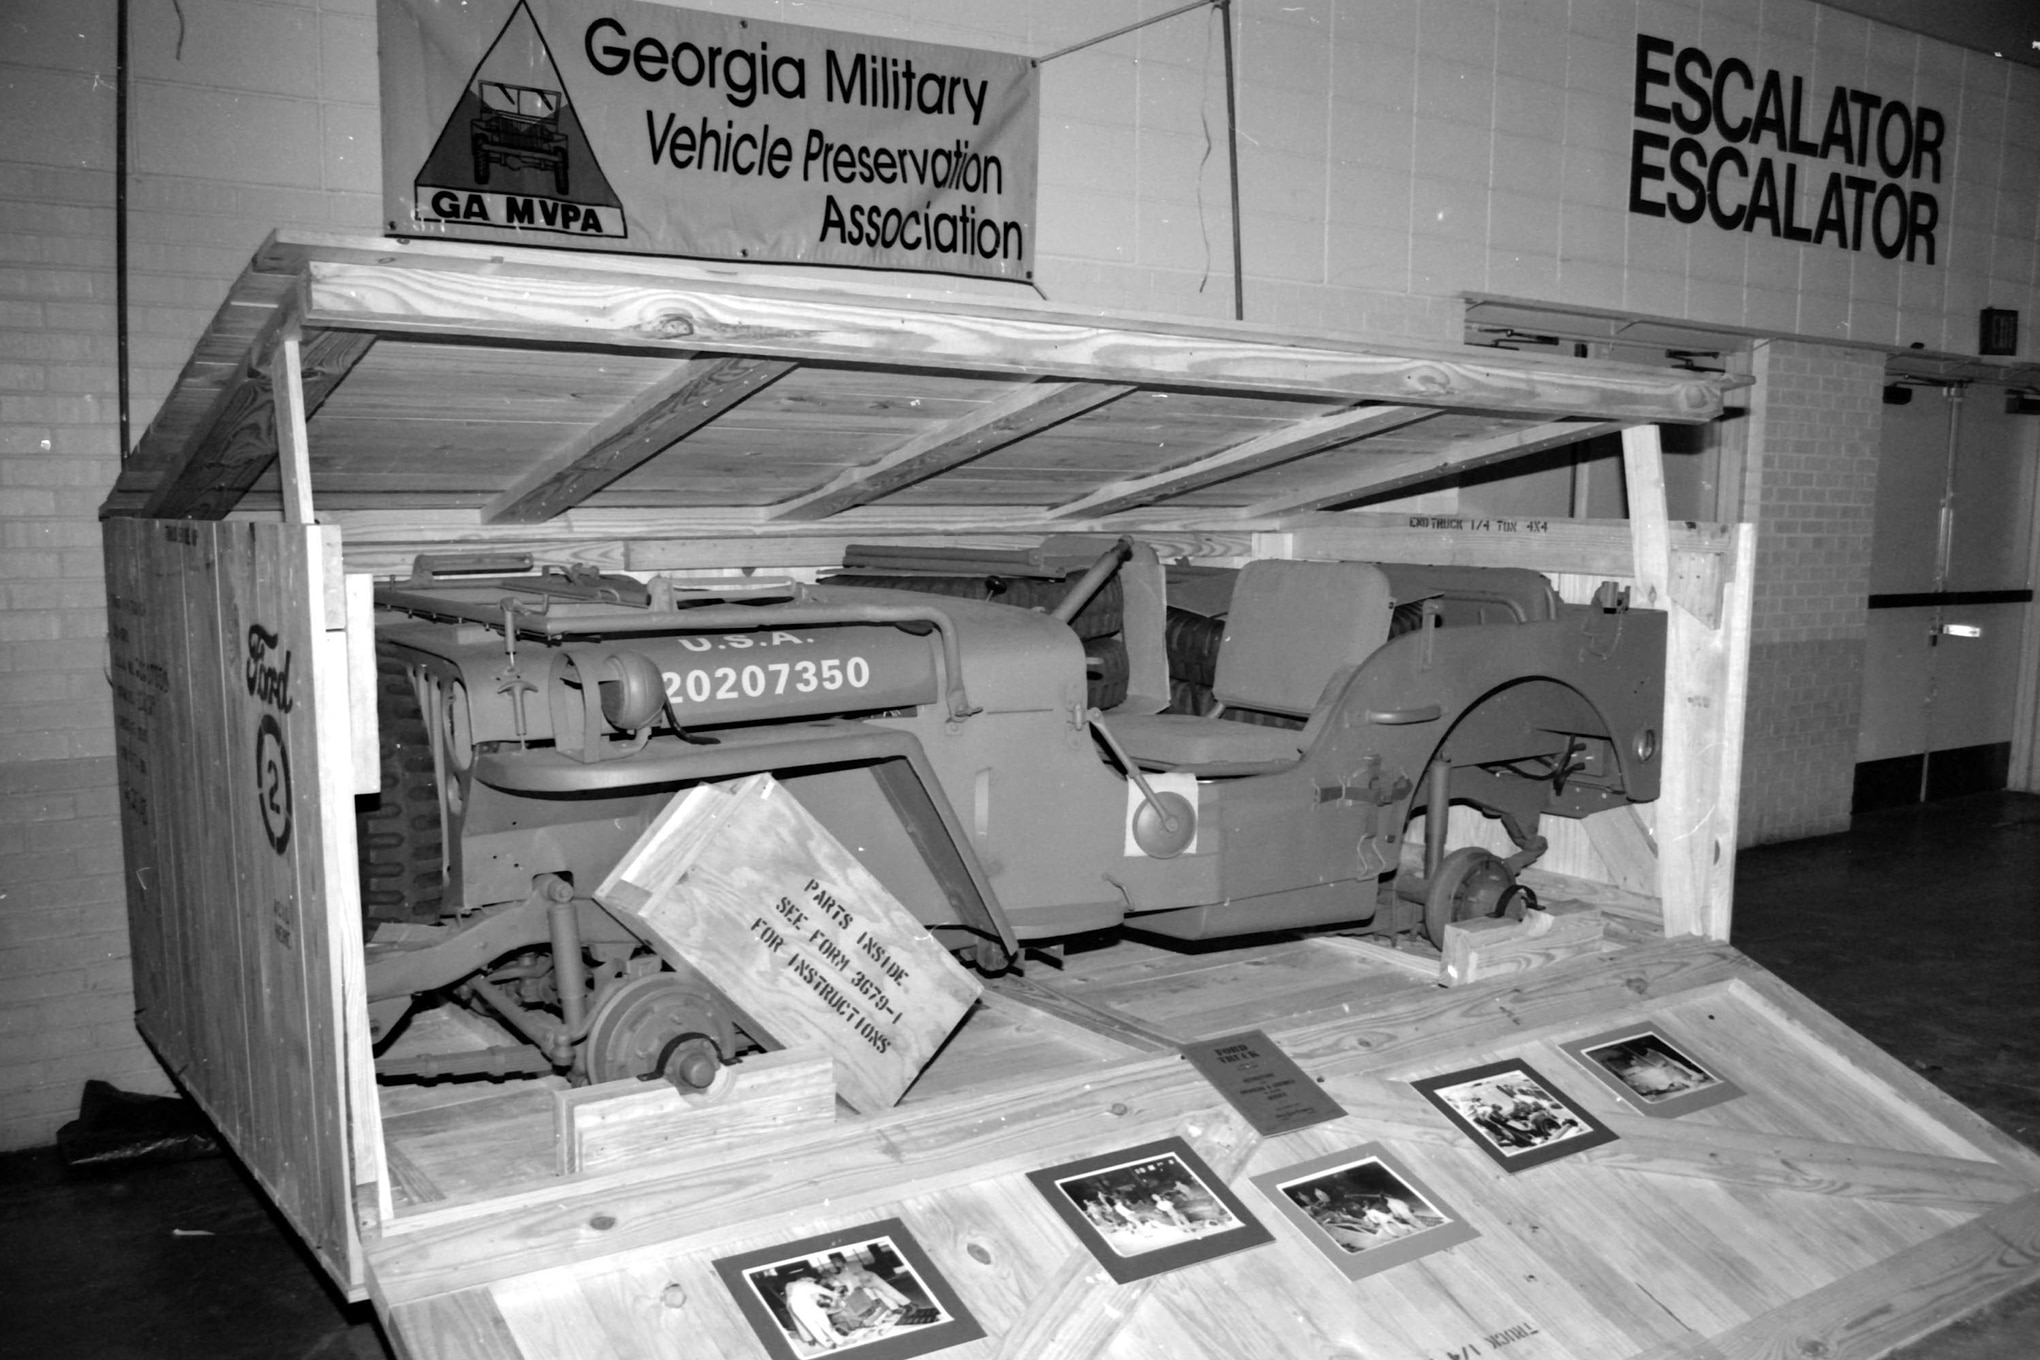 011 jeep in a crate